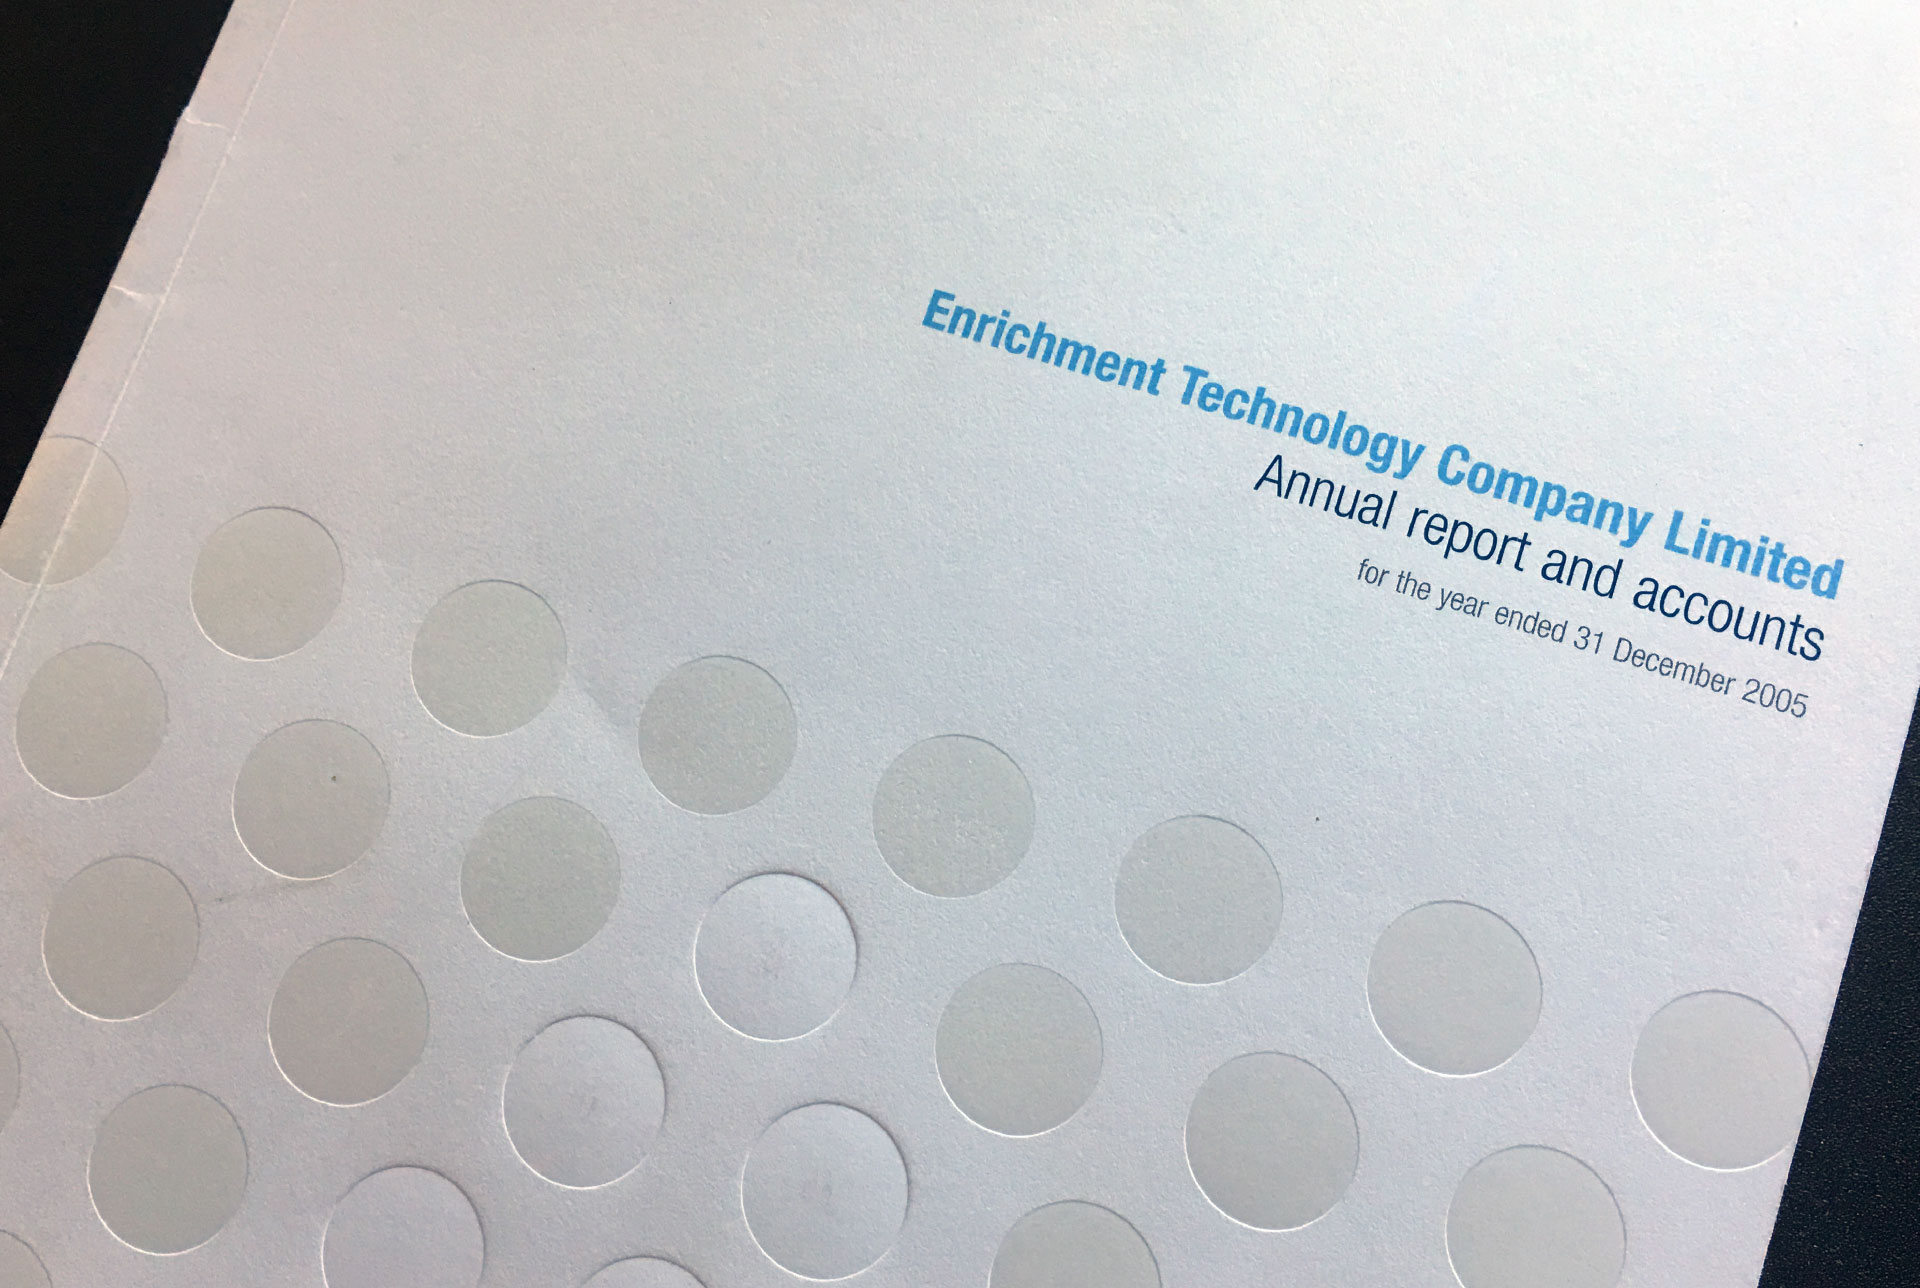 enrichment-technology-annual-report_front-cover.jpg